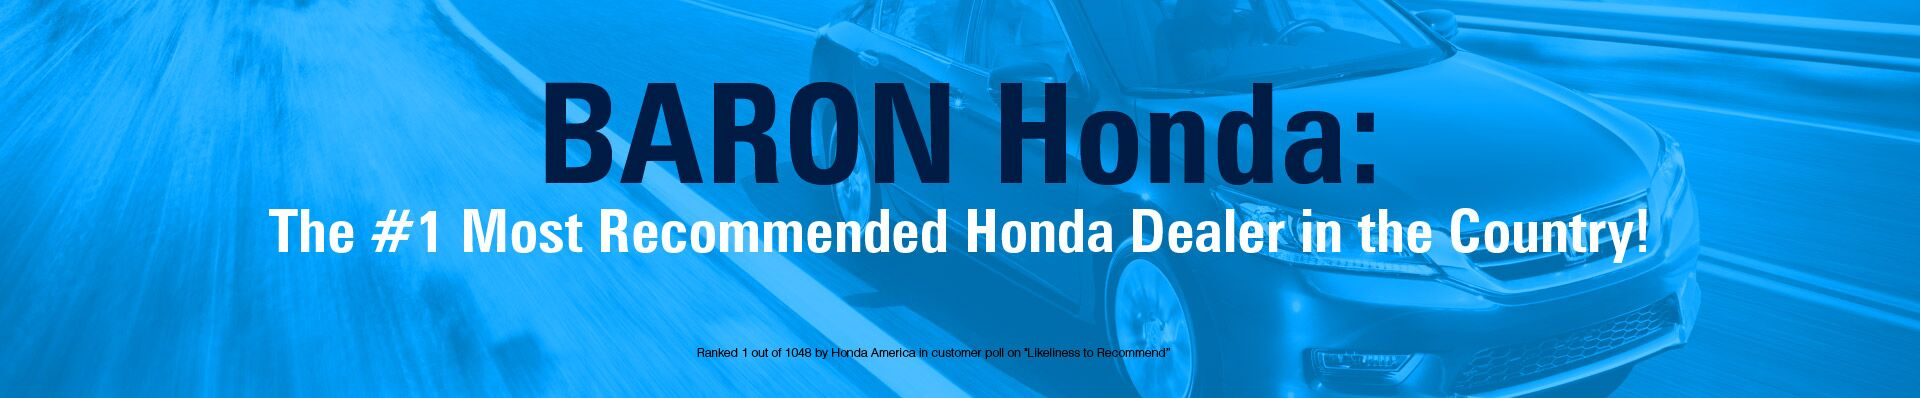 #1 Most Recommended Honda Dealer in the Country!